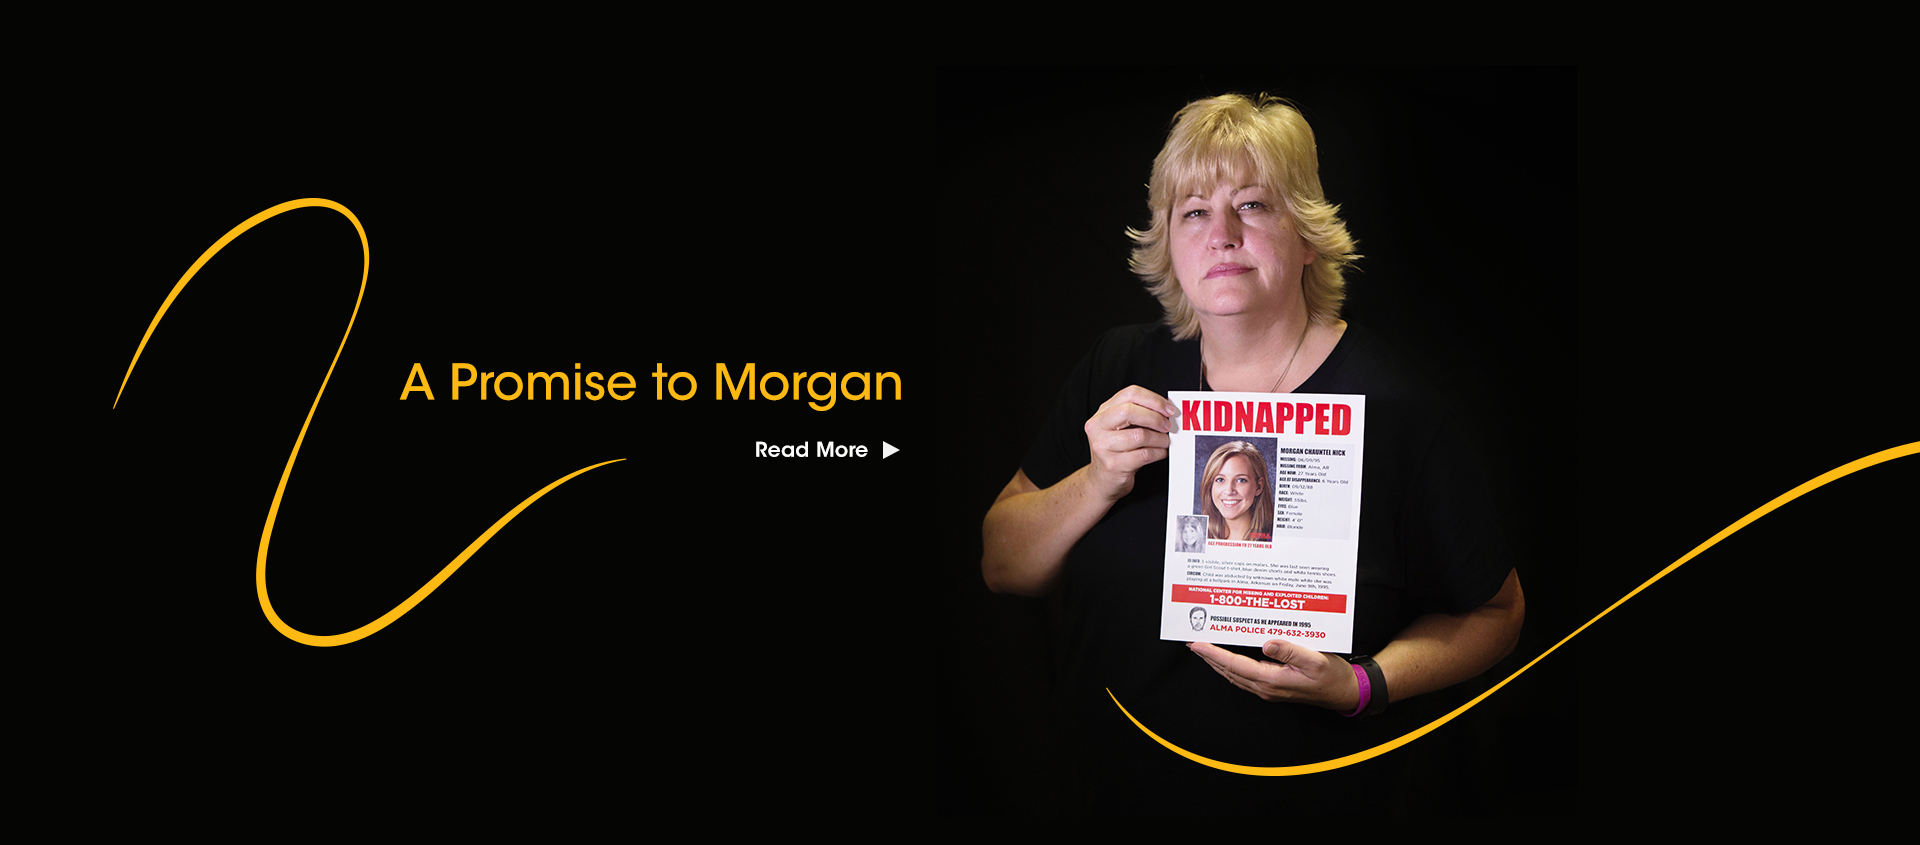 Colleen Nick holds poster of missing Morgan